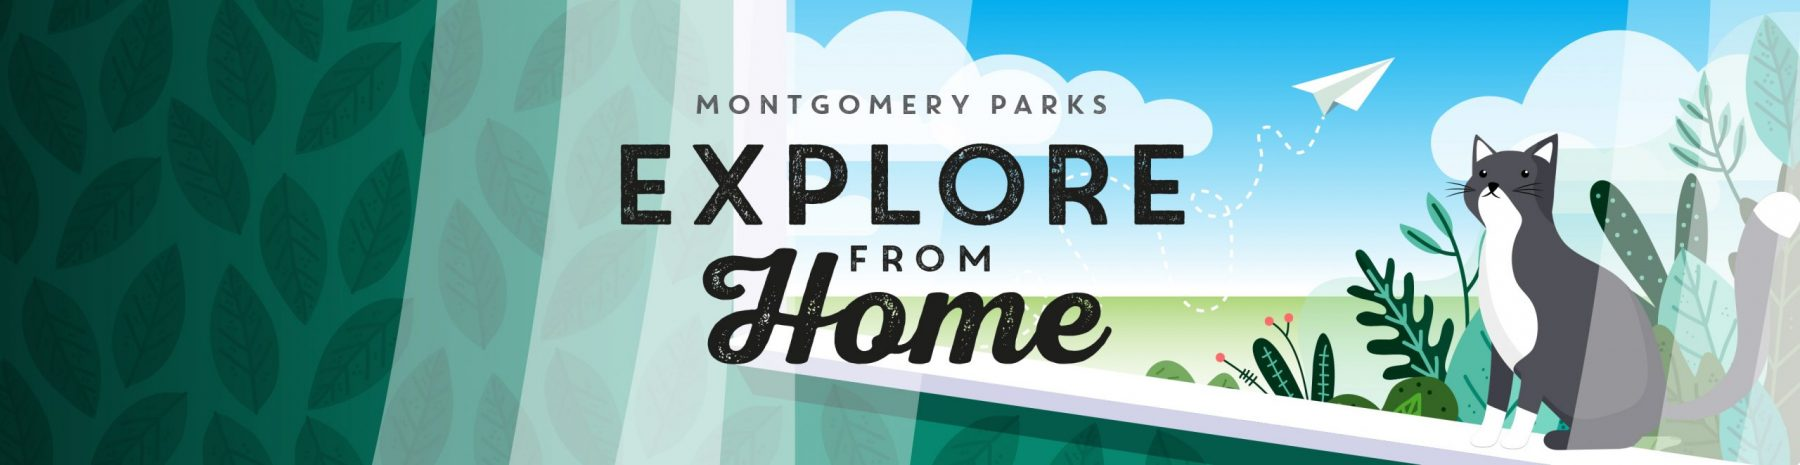 Montgomery Parks Explore from Home - cat graphic in window ledge